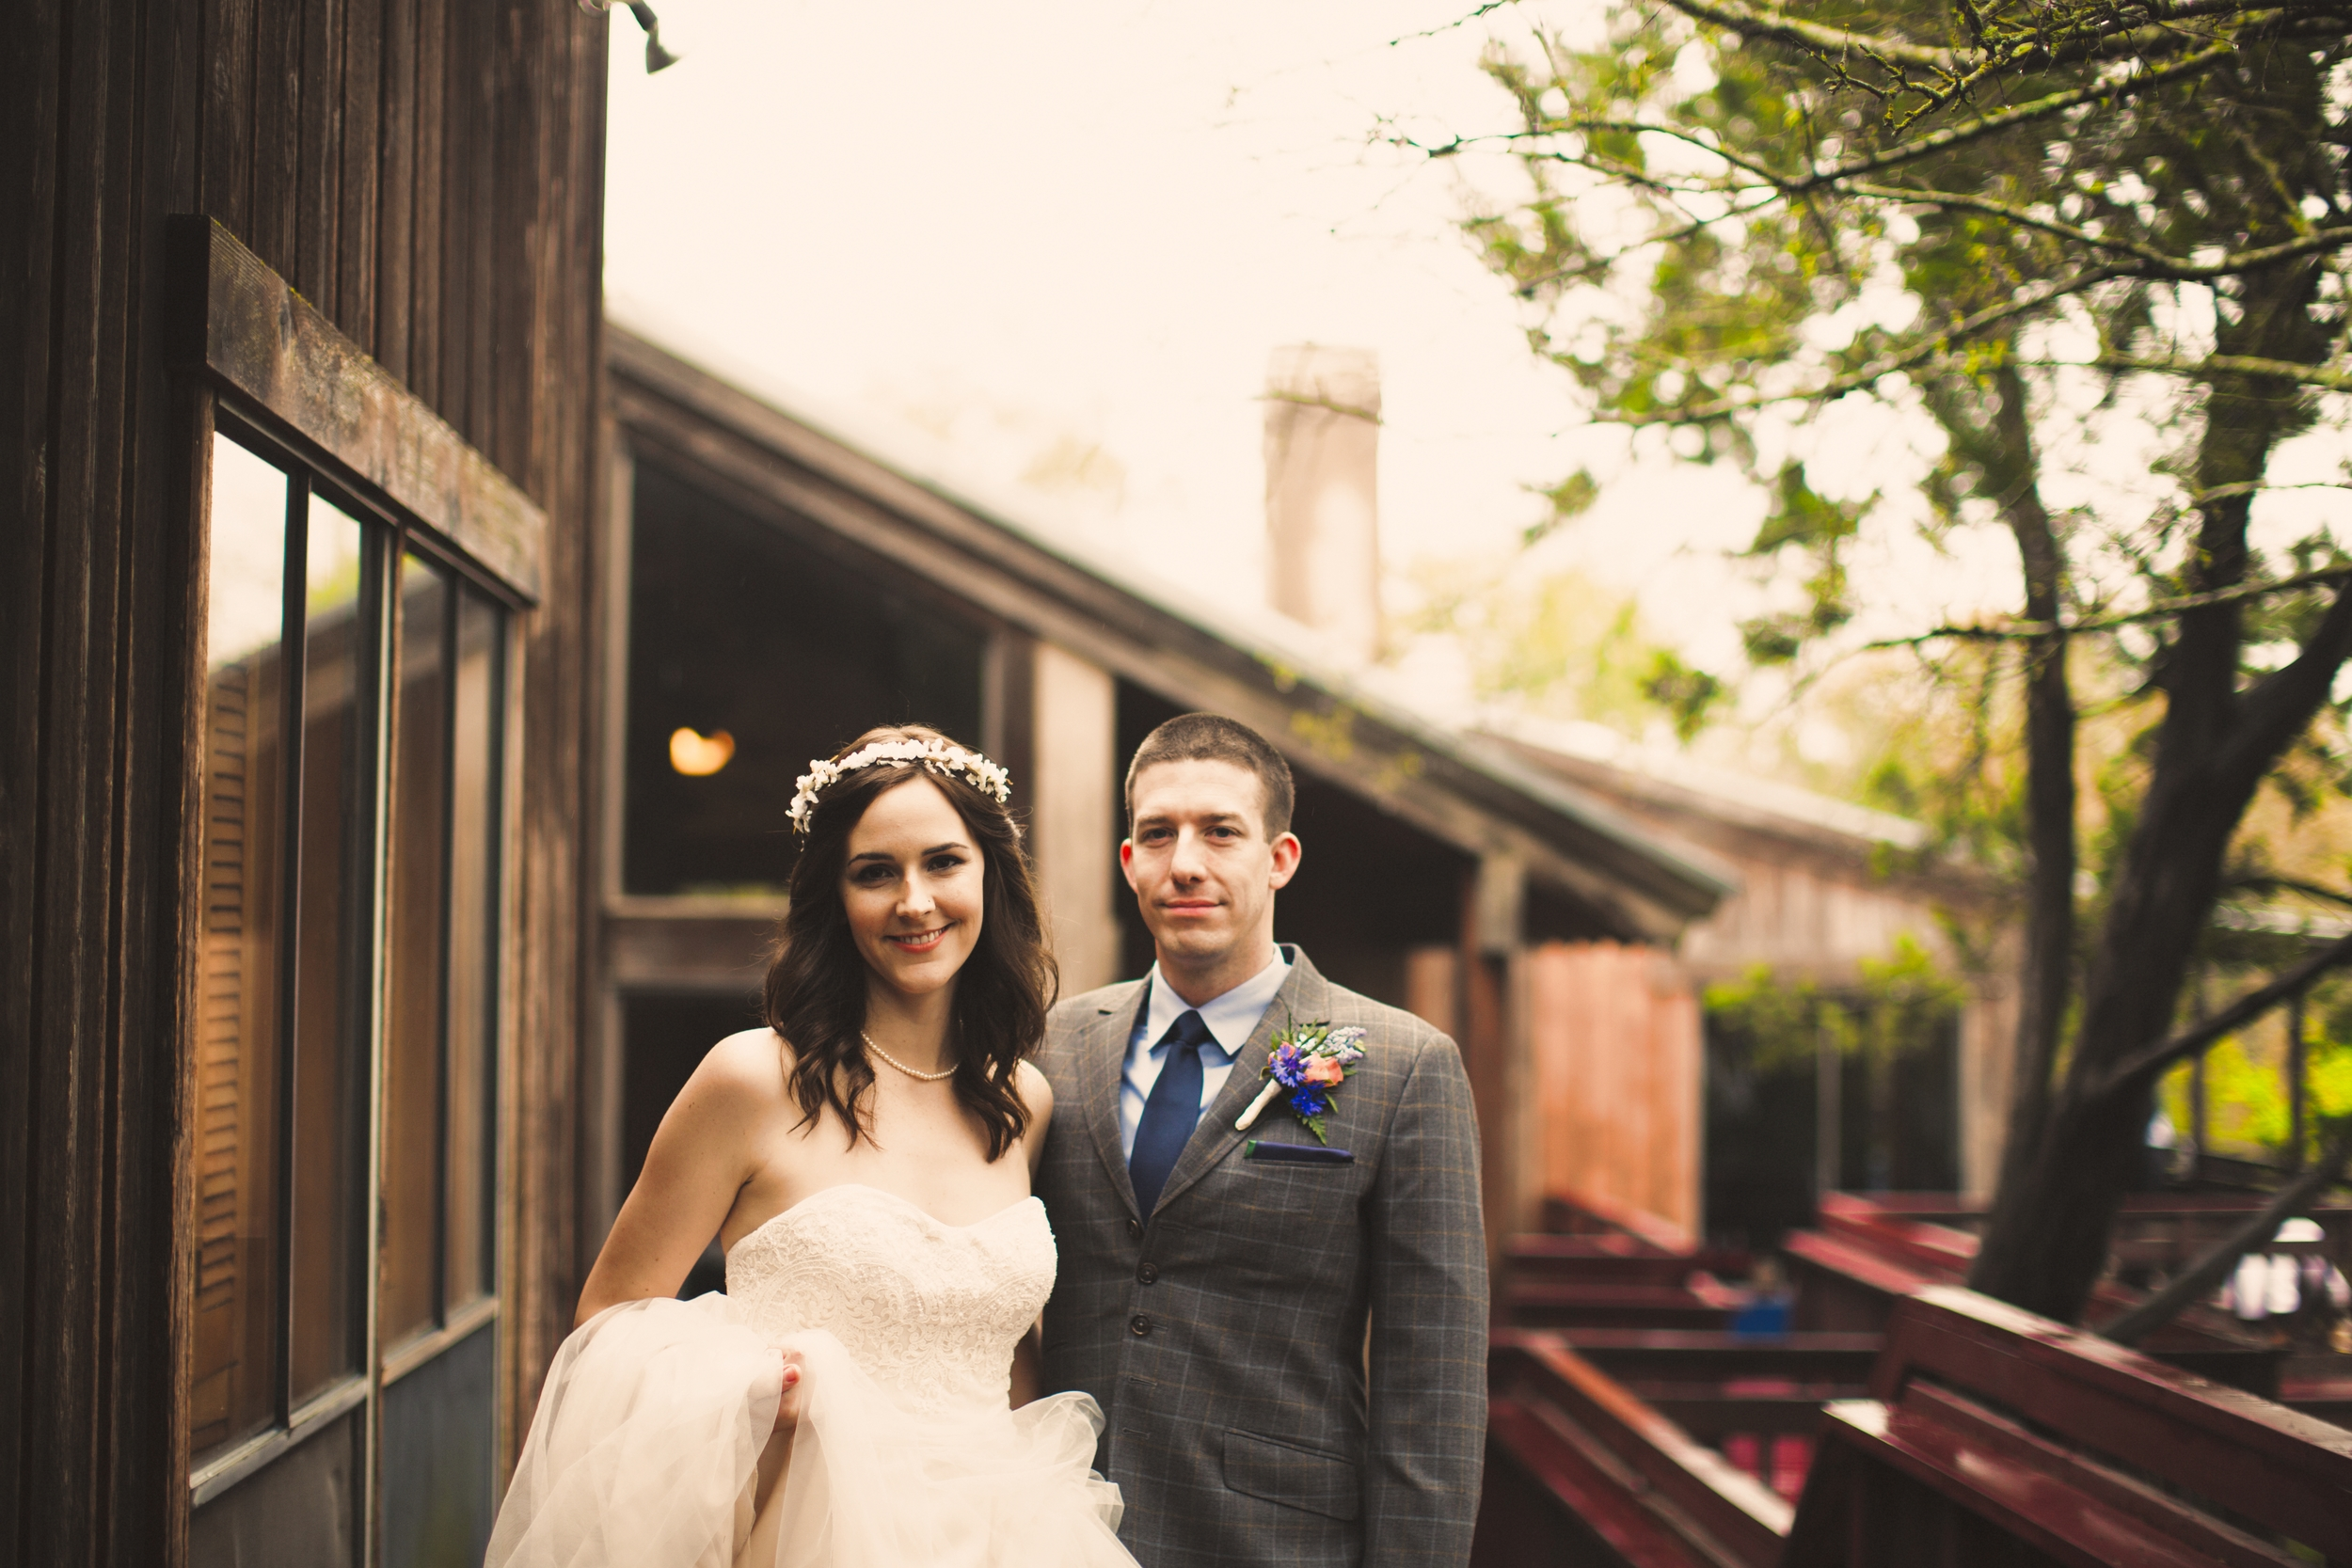 Austin Outdoor Wedding-House on the Hill-Bri Costello Photography-106.jpg